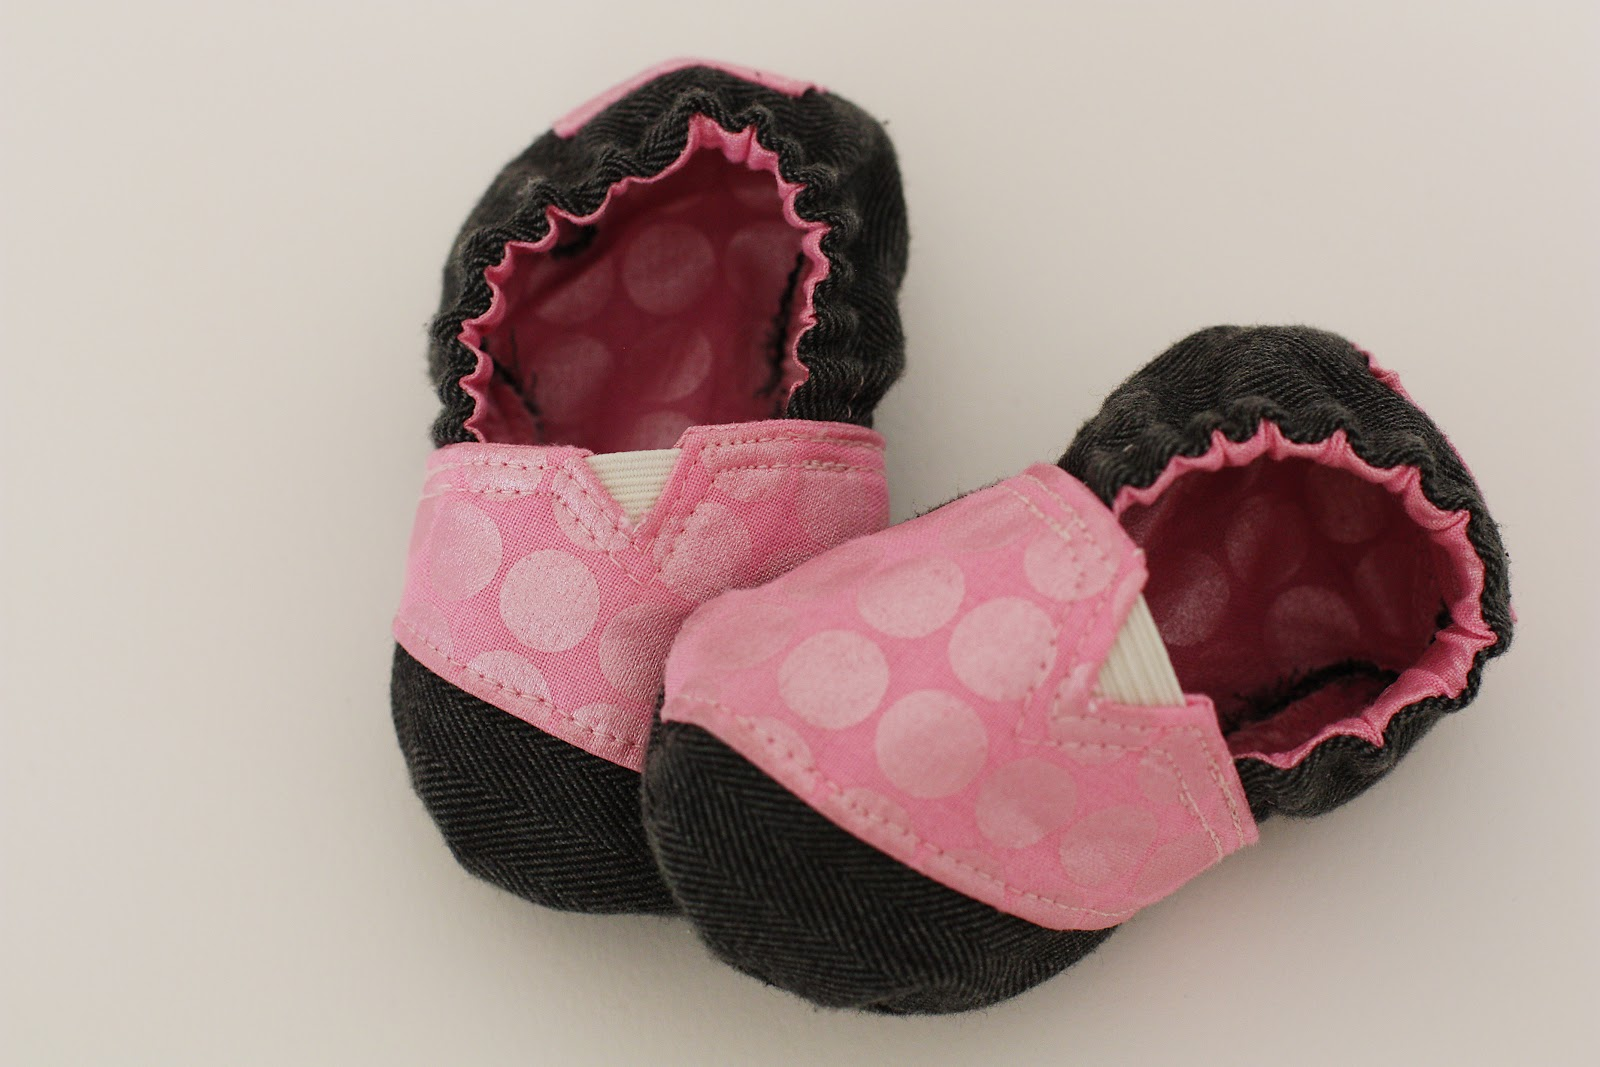 27ae6a08a76 A few weeks ago Sabra posted a pic on Instagram of some adorable TOMS  inspired baby shoes that she had made for her little Ivy